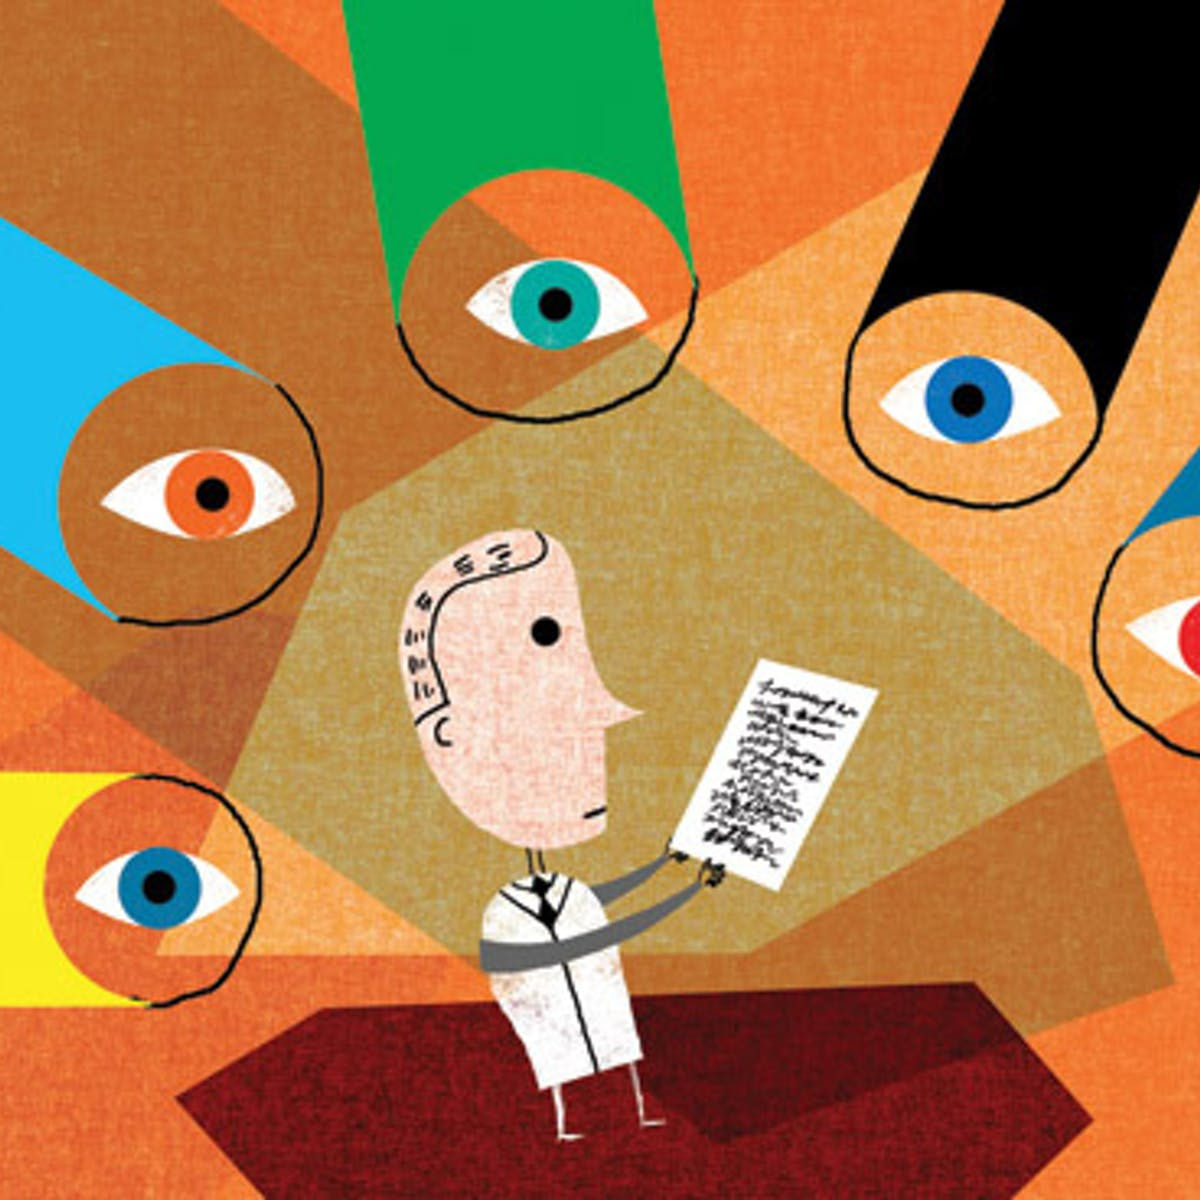 Explainer: what is peer review?